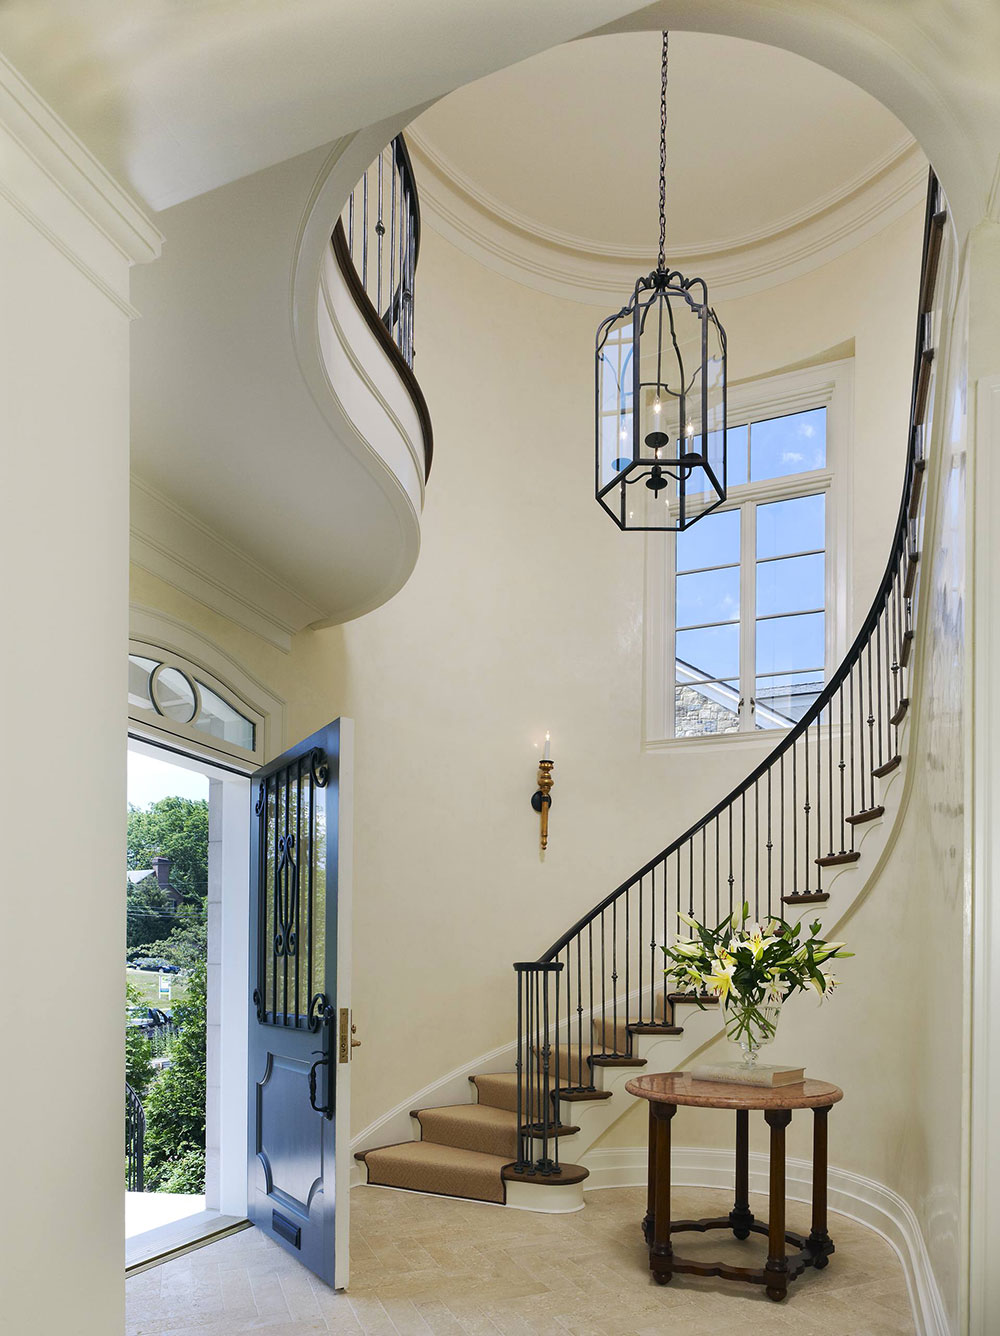 Impressive Design Ideas For Foyers4 1 Decorating A Foyer: Not